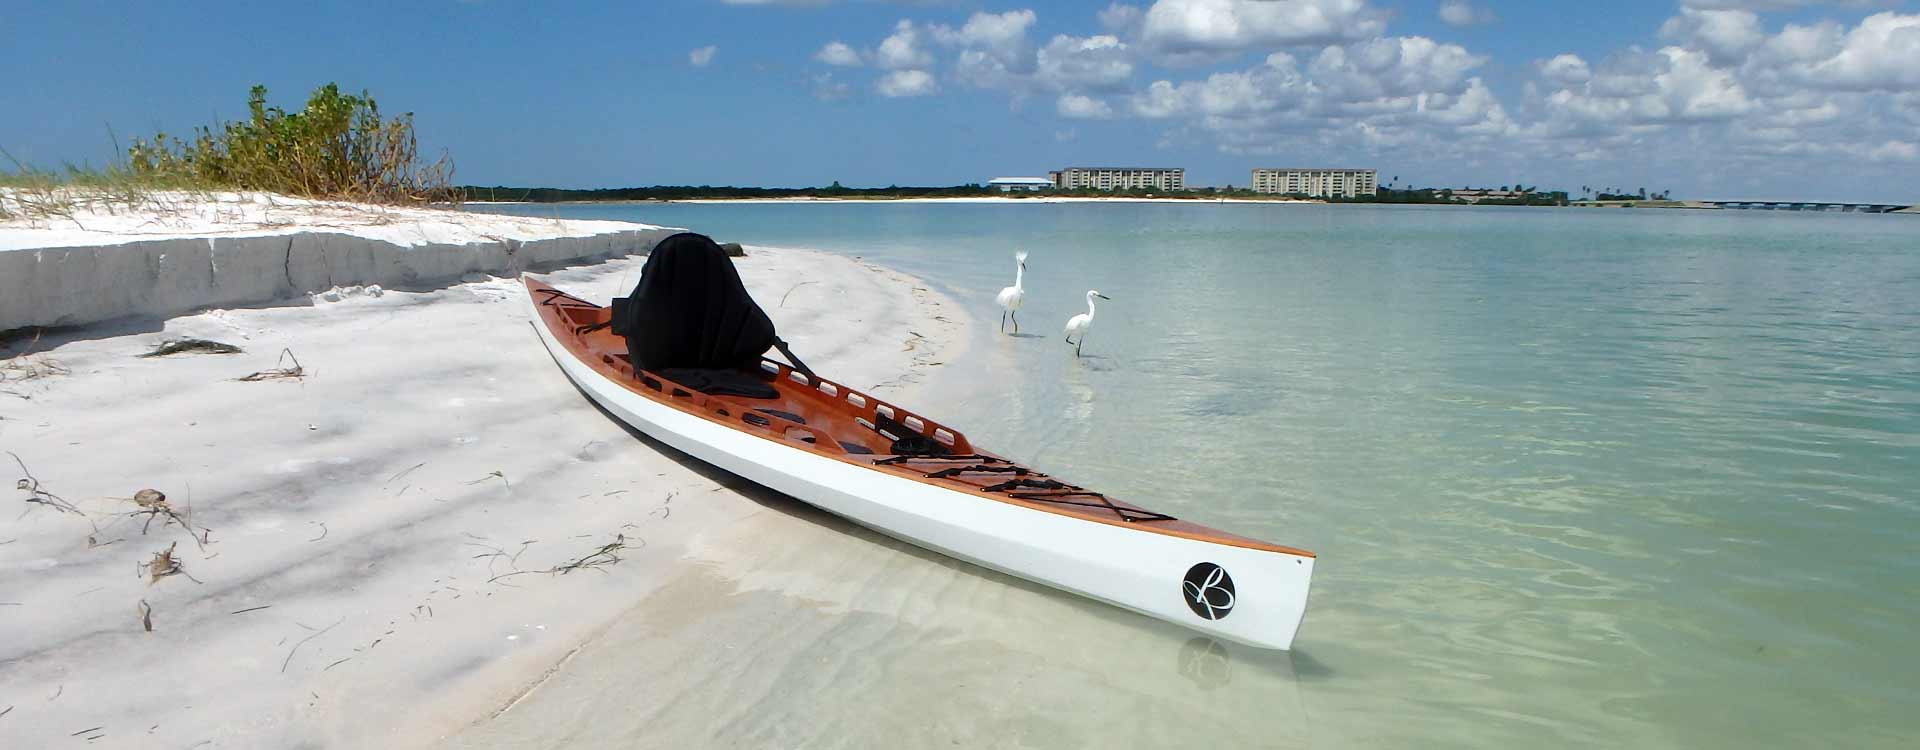 Fishing Yak wooden stitch&glue Bedard Yacht Design SOT kayak